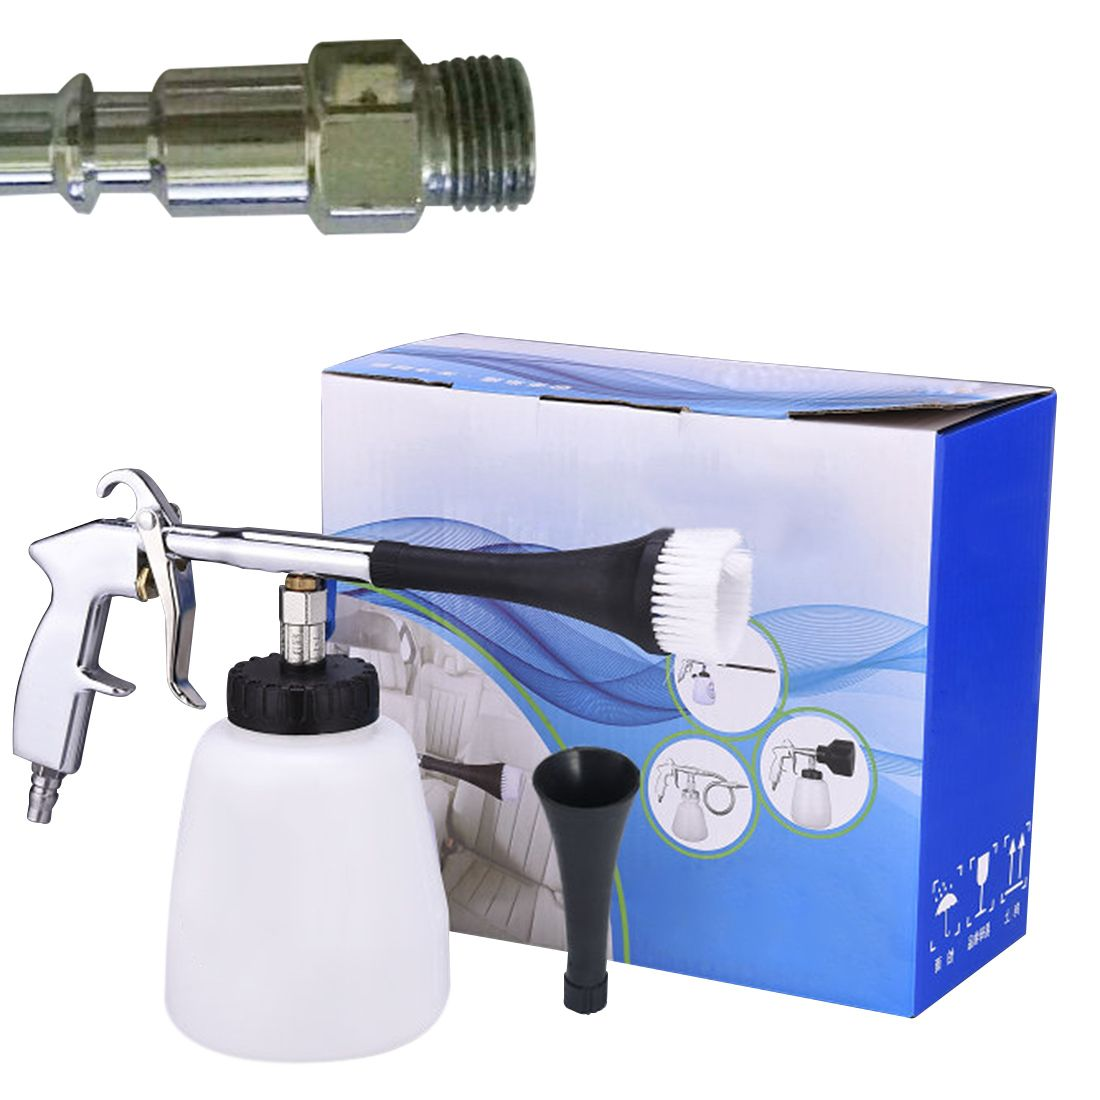 New hot High pressure washer car cleaning tool Spray gun car interior dry cleaning machine Tornado cleaning gun Cleaning the gap